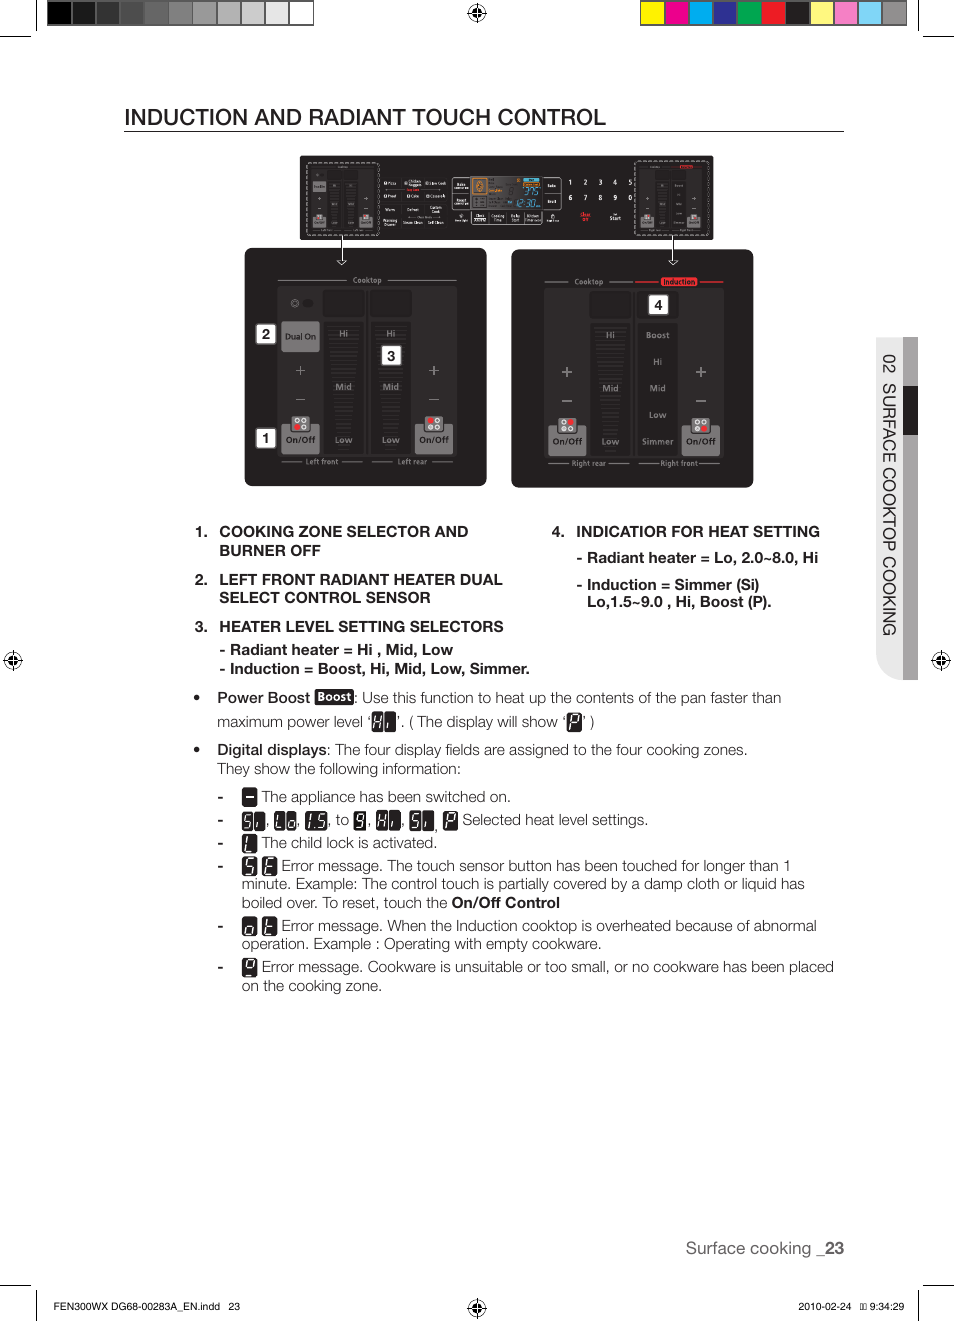 induction and radiant touch control samsung fe n300 user manual rh manualsdir com Samsung Owner's Manual Samsung Owner's Manual